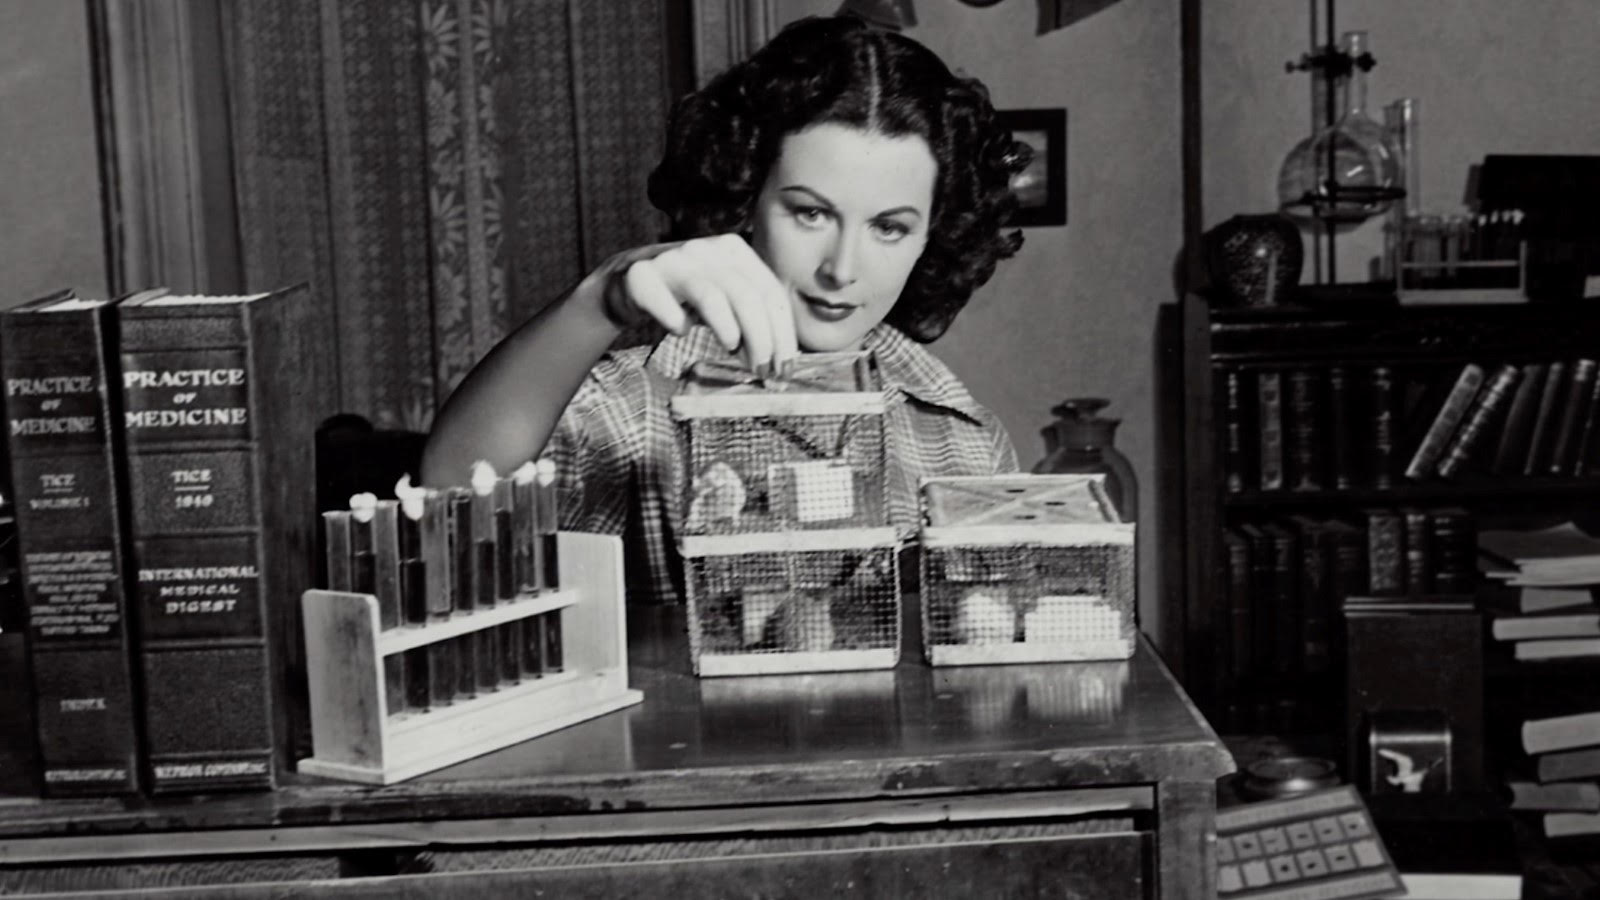 Bombshell. The Hedy Lamarr Story 1